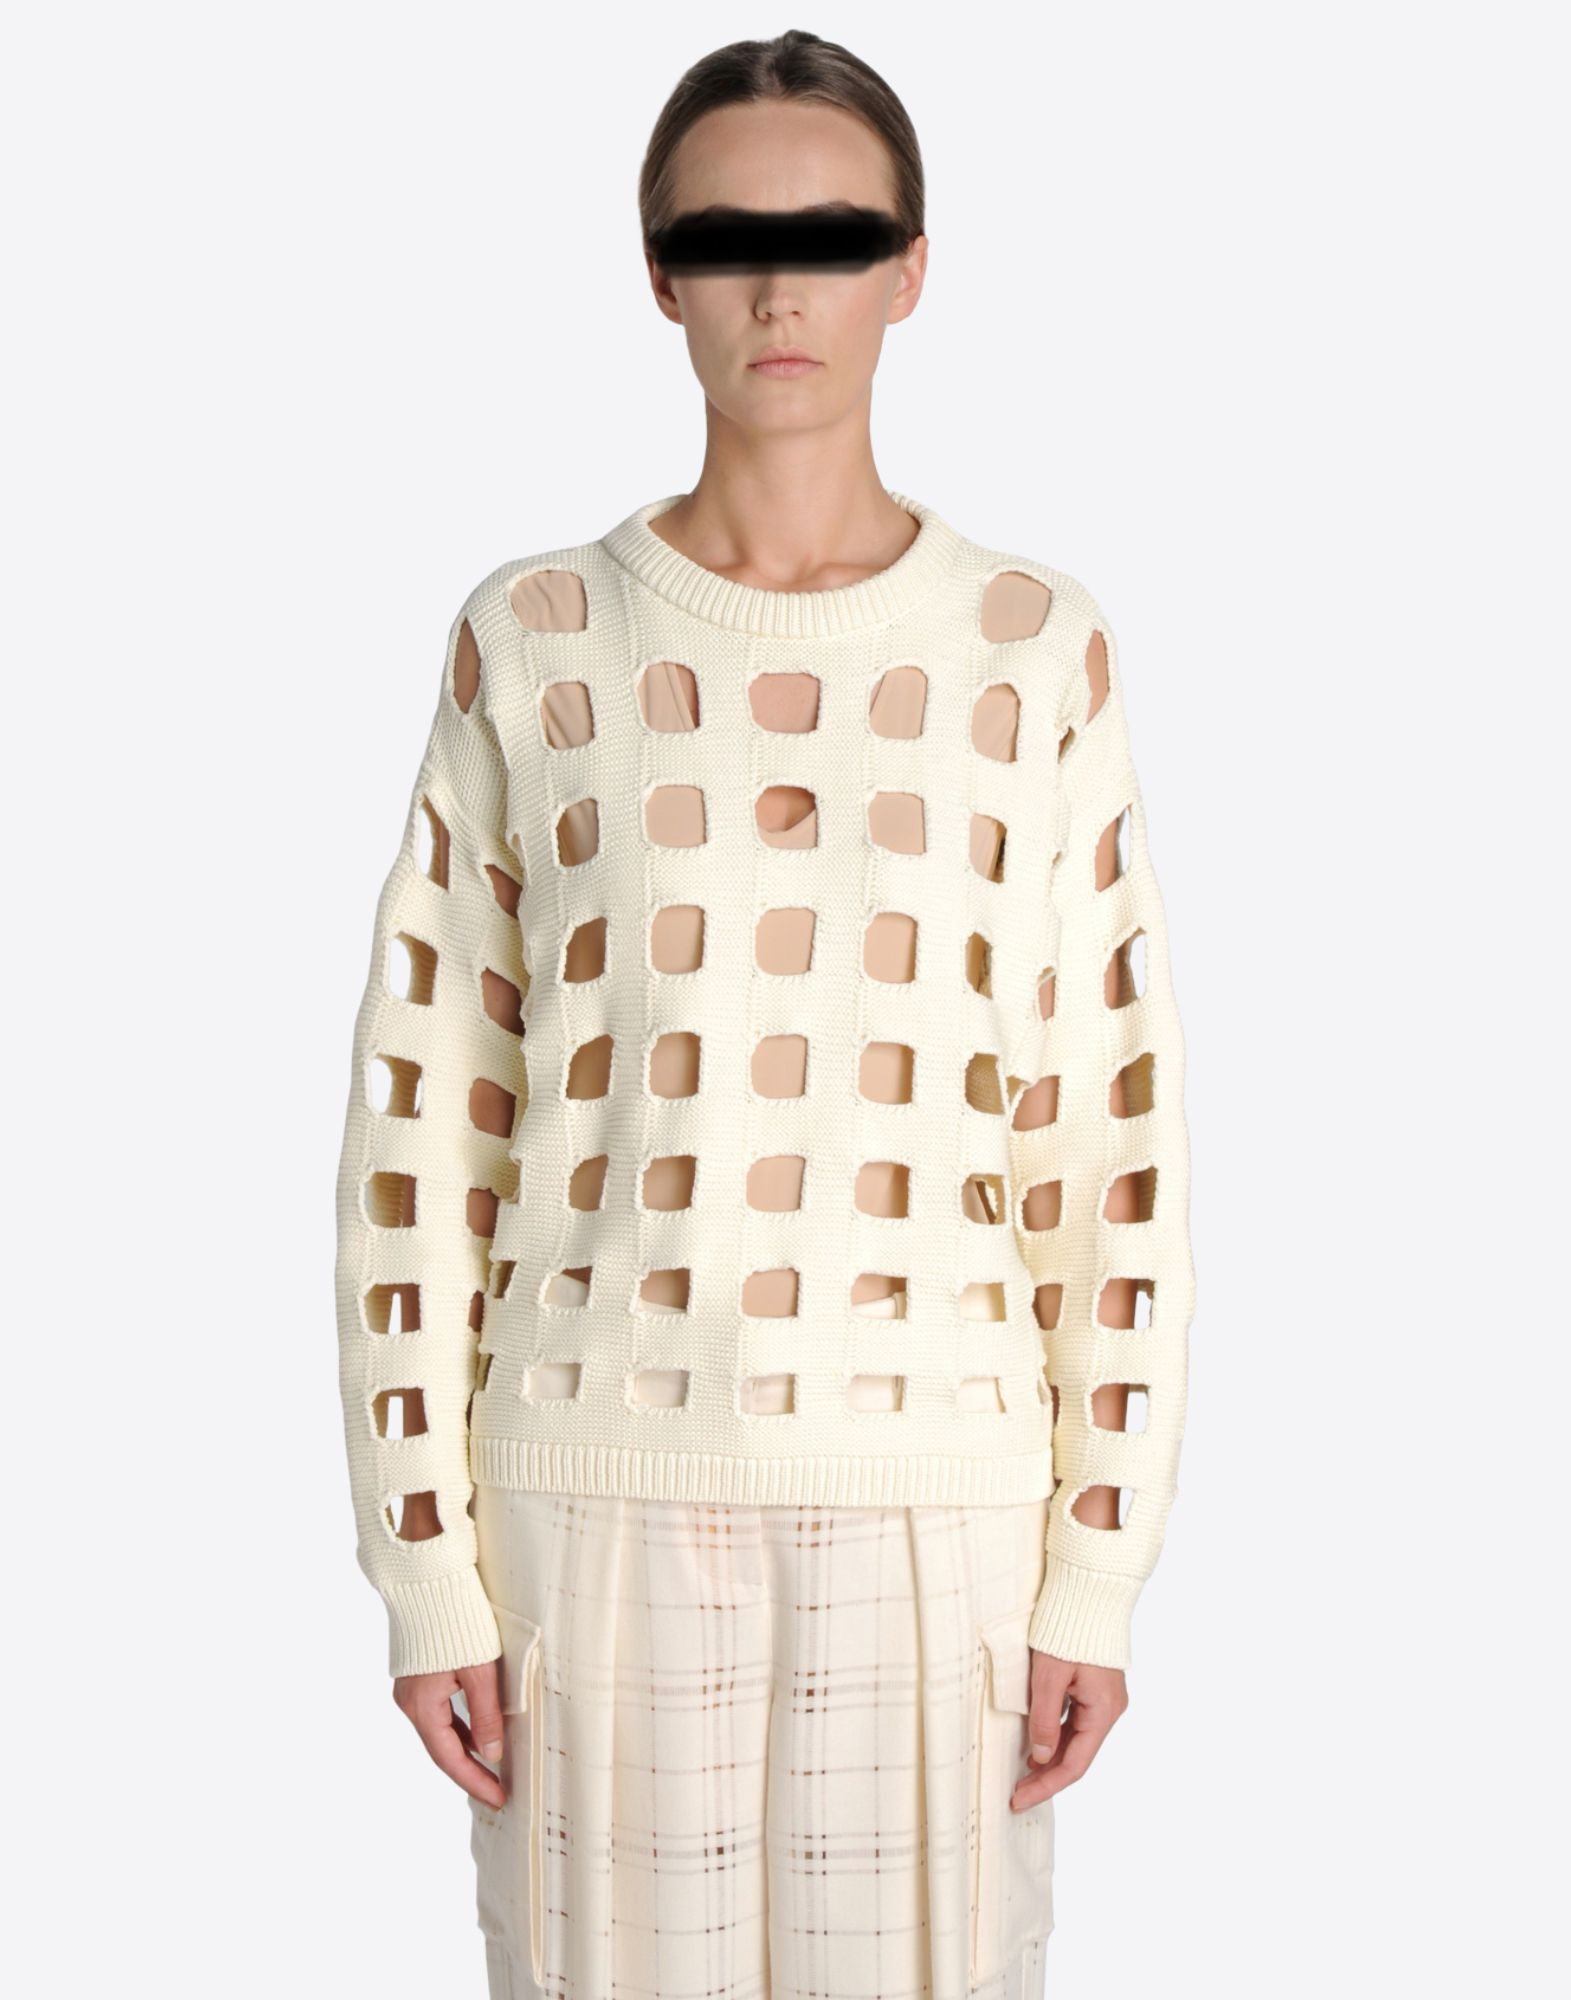 MAISON MARGIELA 1 Knit sweater with cut-out checks Long sleeve sweater Woman f